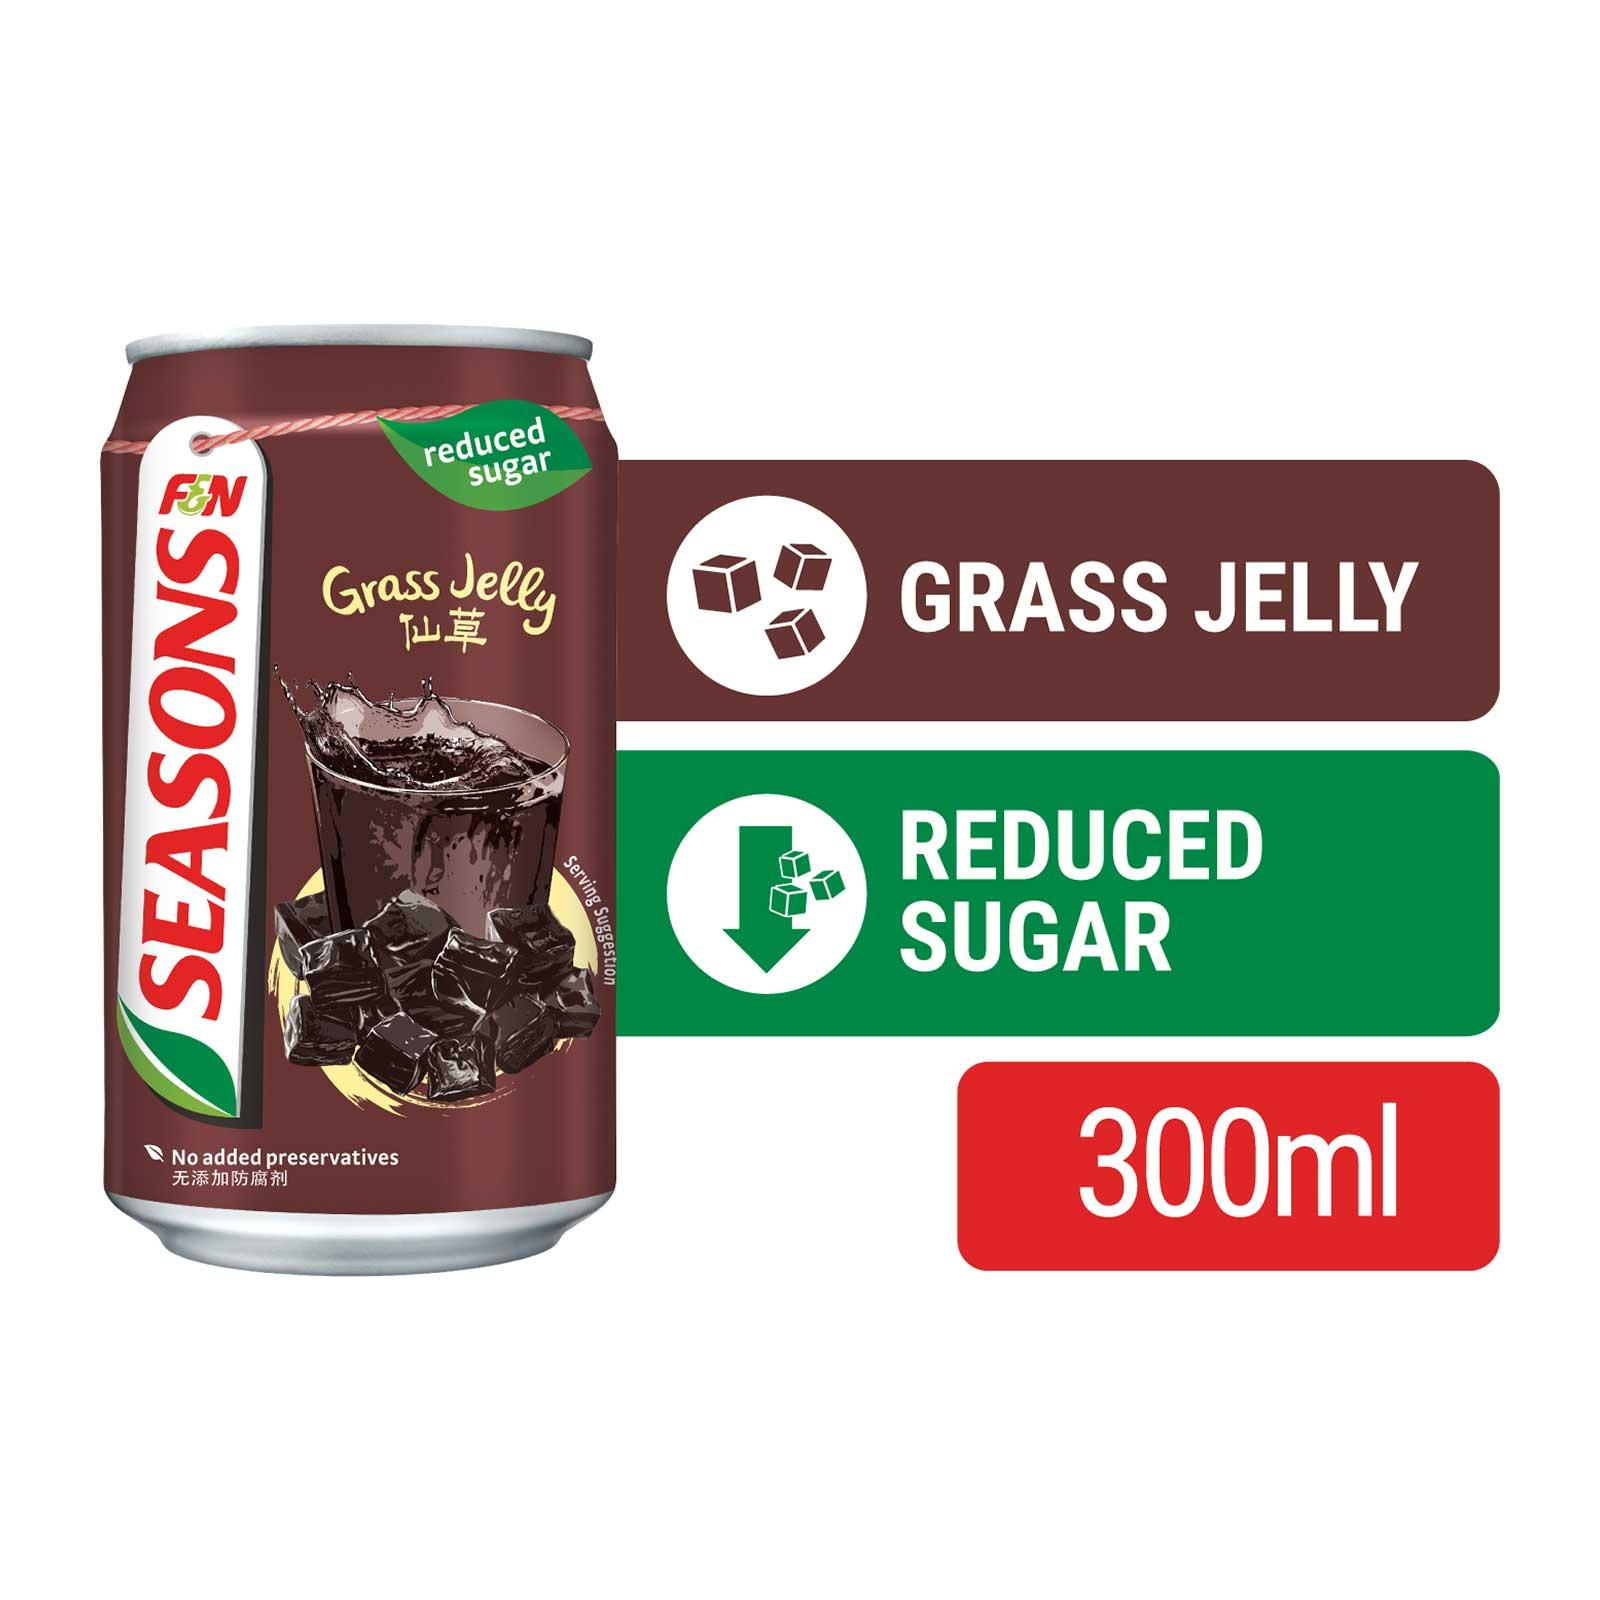 F&N Seasons Reduced Sugar Grass Jelly Drink